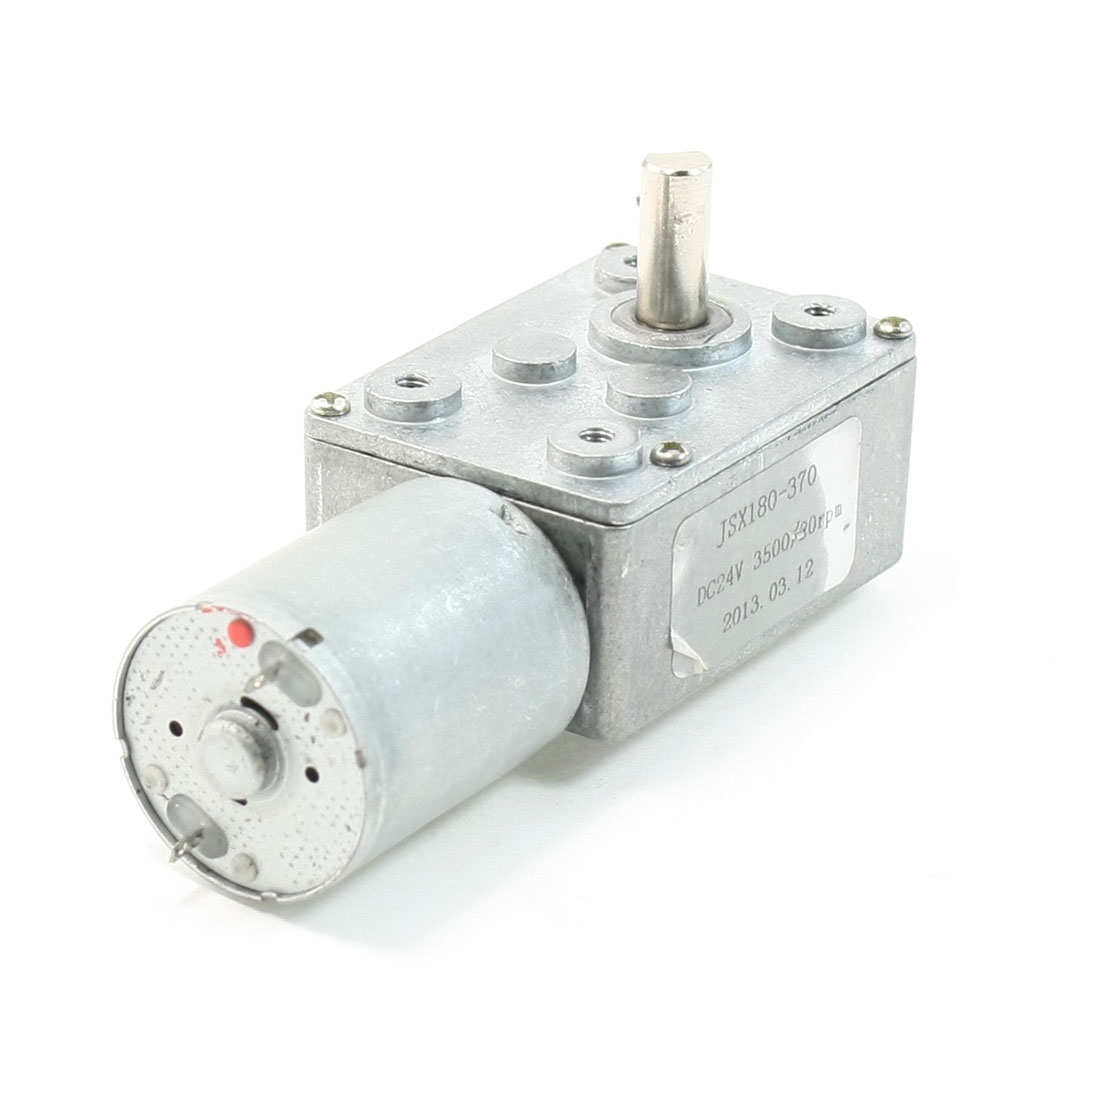 UXCELL 24V 3500/20Rpm Rectangle Shape Gear Box 2 Terminal Electric Geared Motor<br><br>Aliexpress